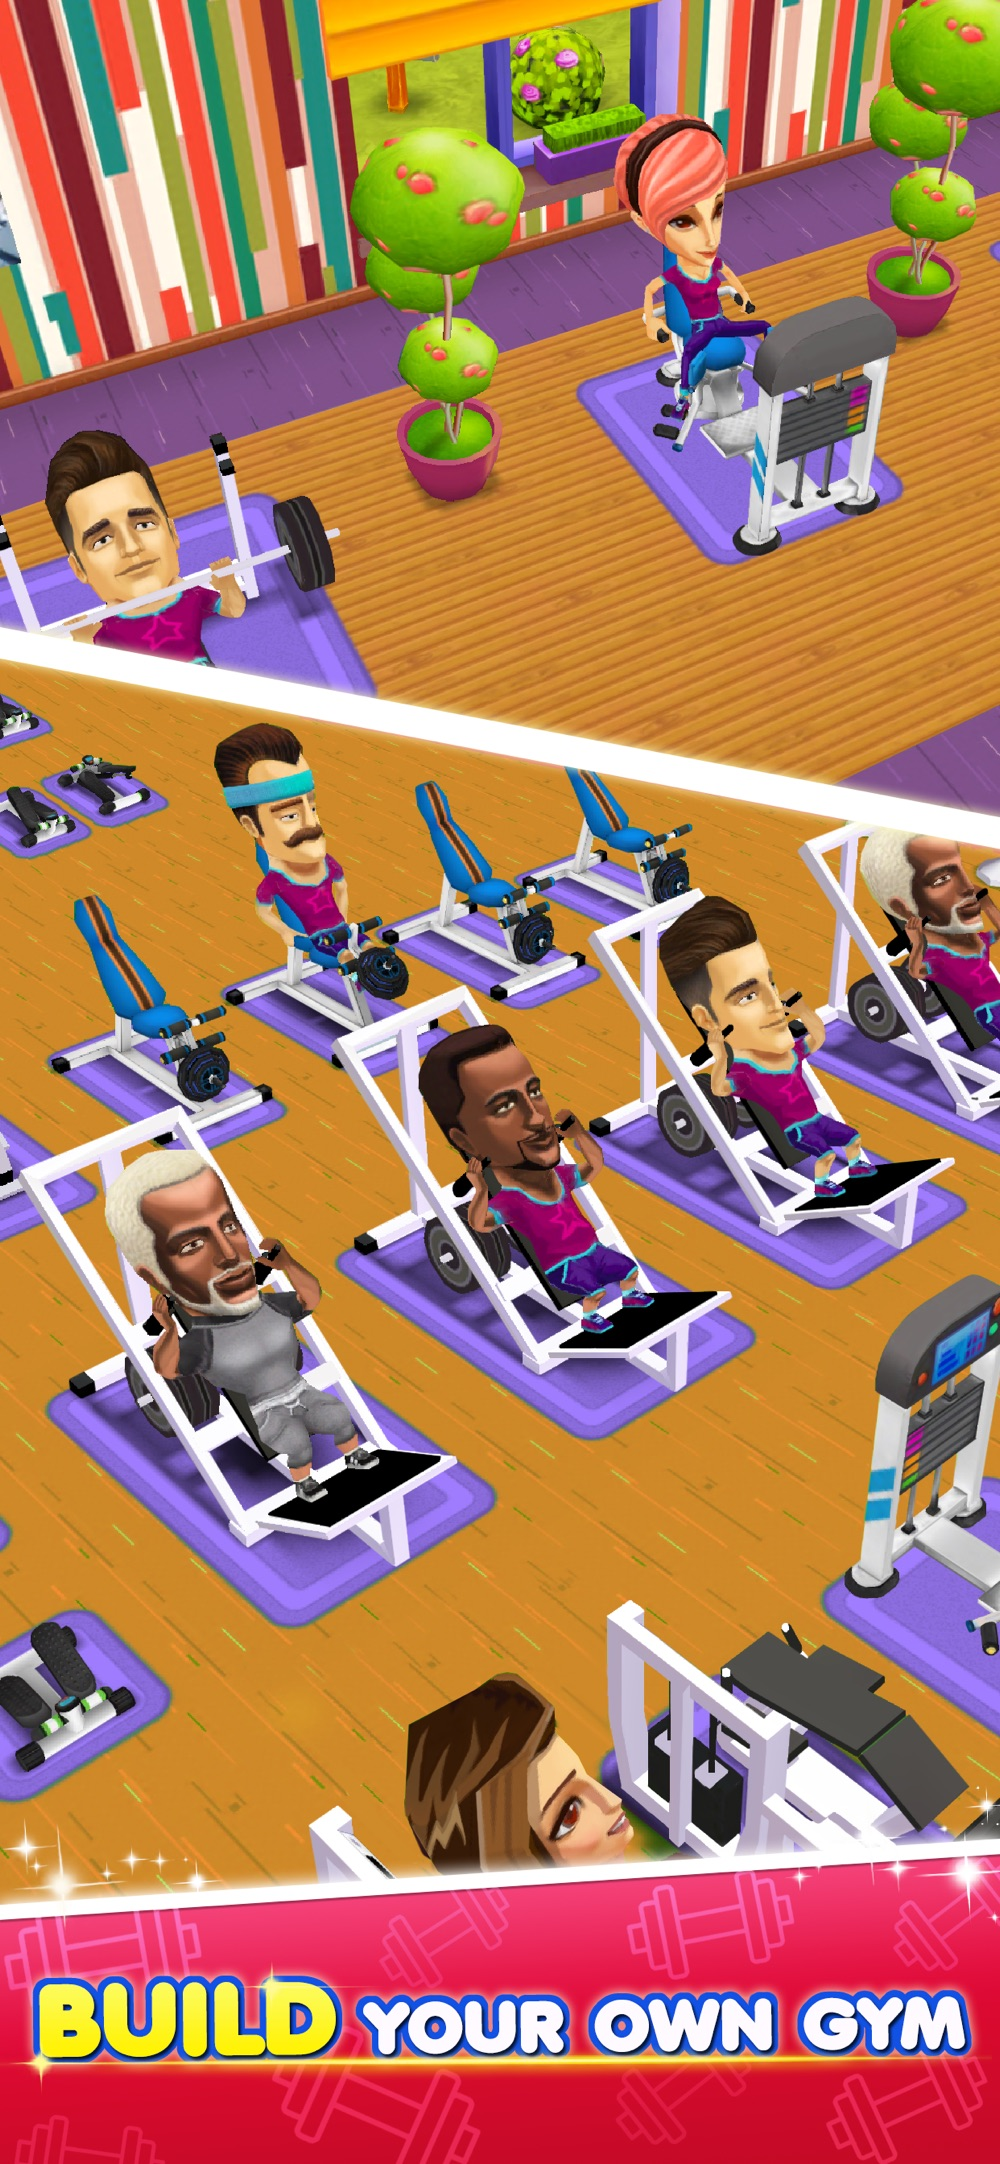 My Gym: Fitness Studio Manager hack tool